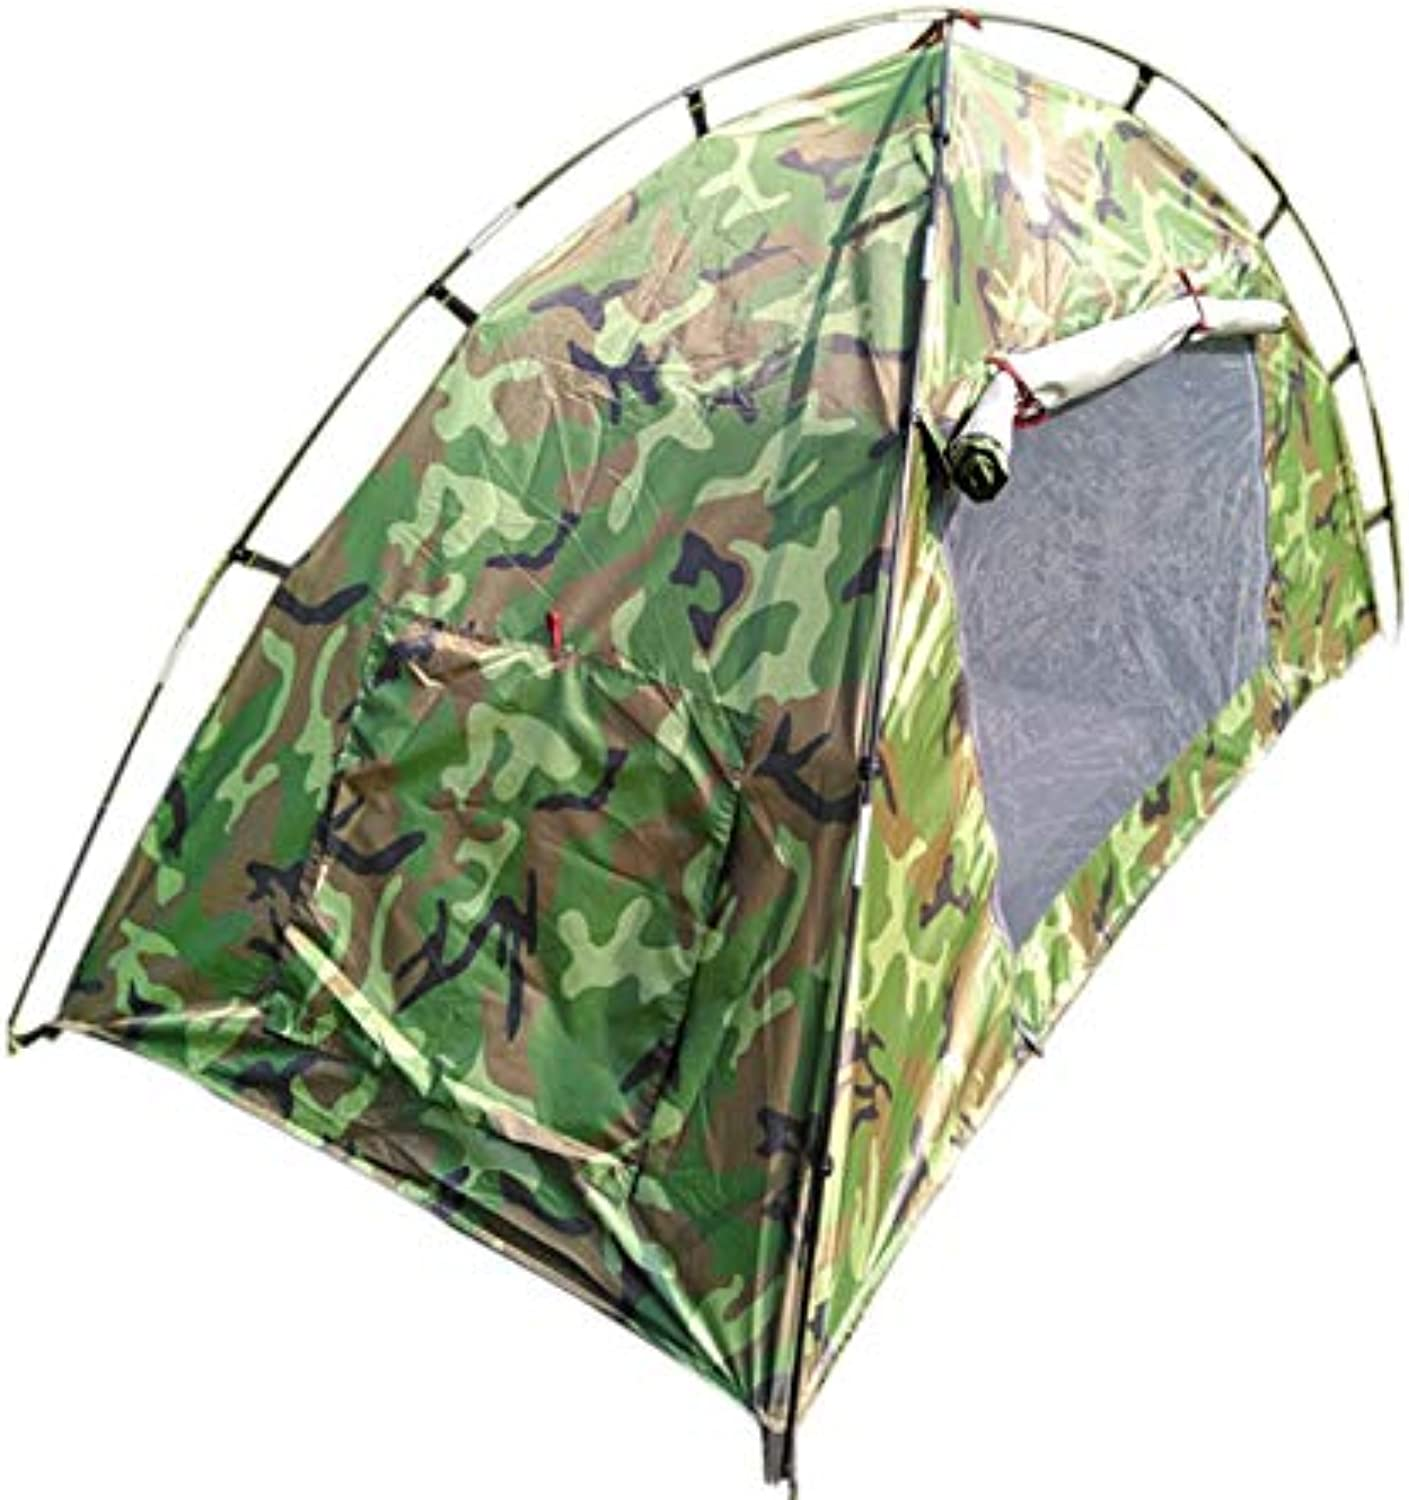 Jungle Camouflage Windproof and Rainproof Double-Layer Single Tent, Moisture pad, Inflatable Cushion, Outdoor Camping Fishing Indoor